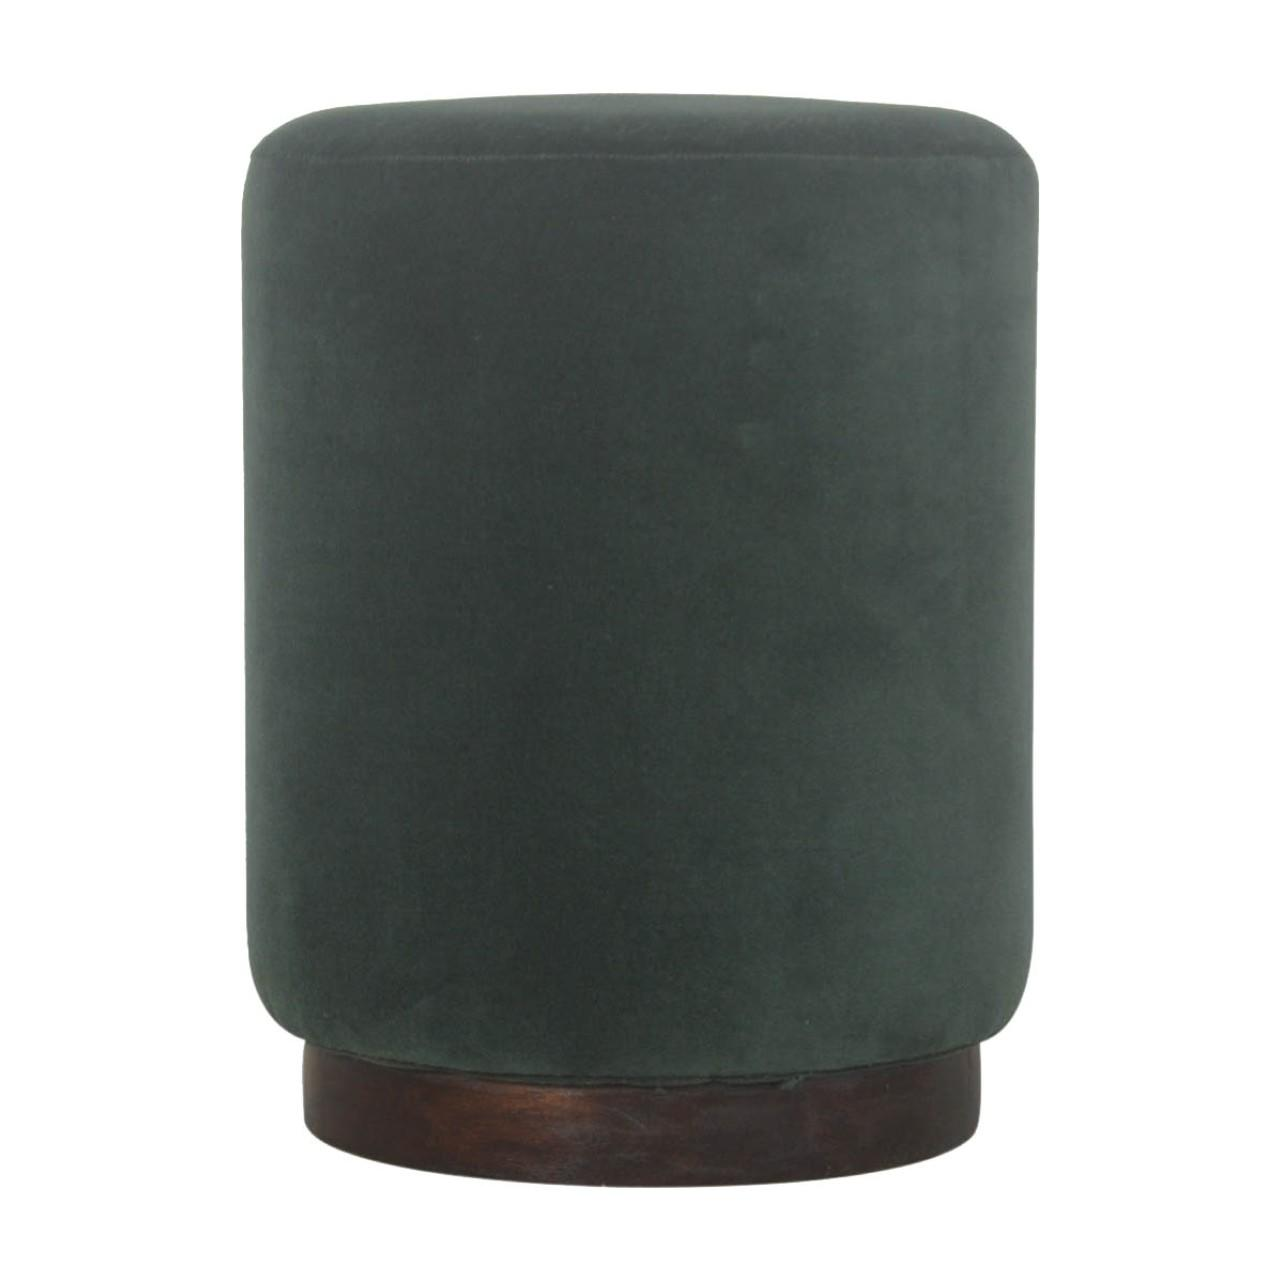 Emerald Velvet Footstool with Wooden Base